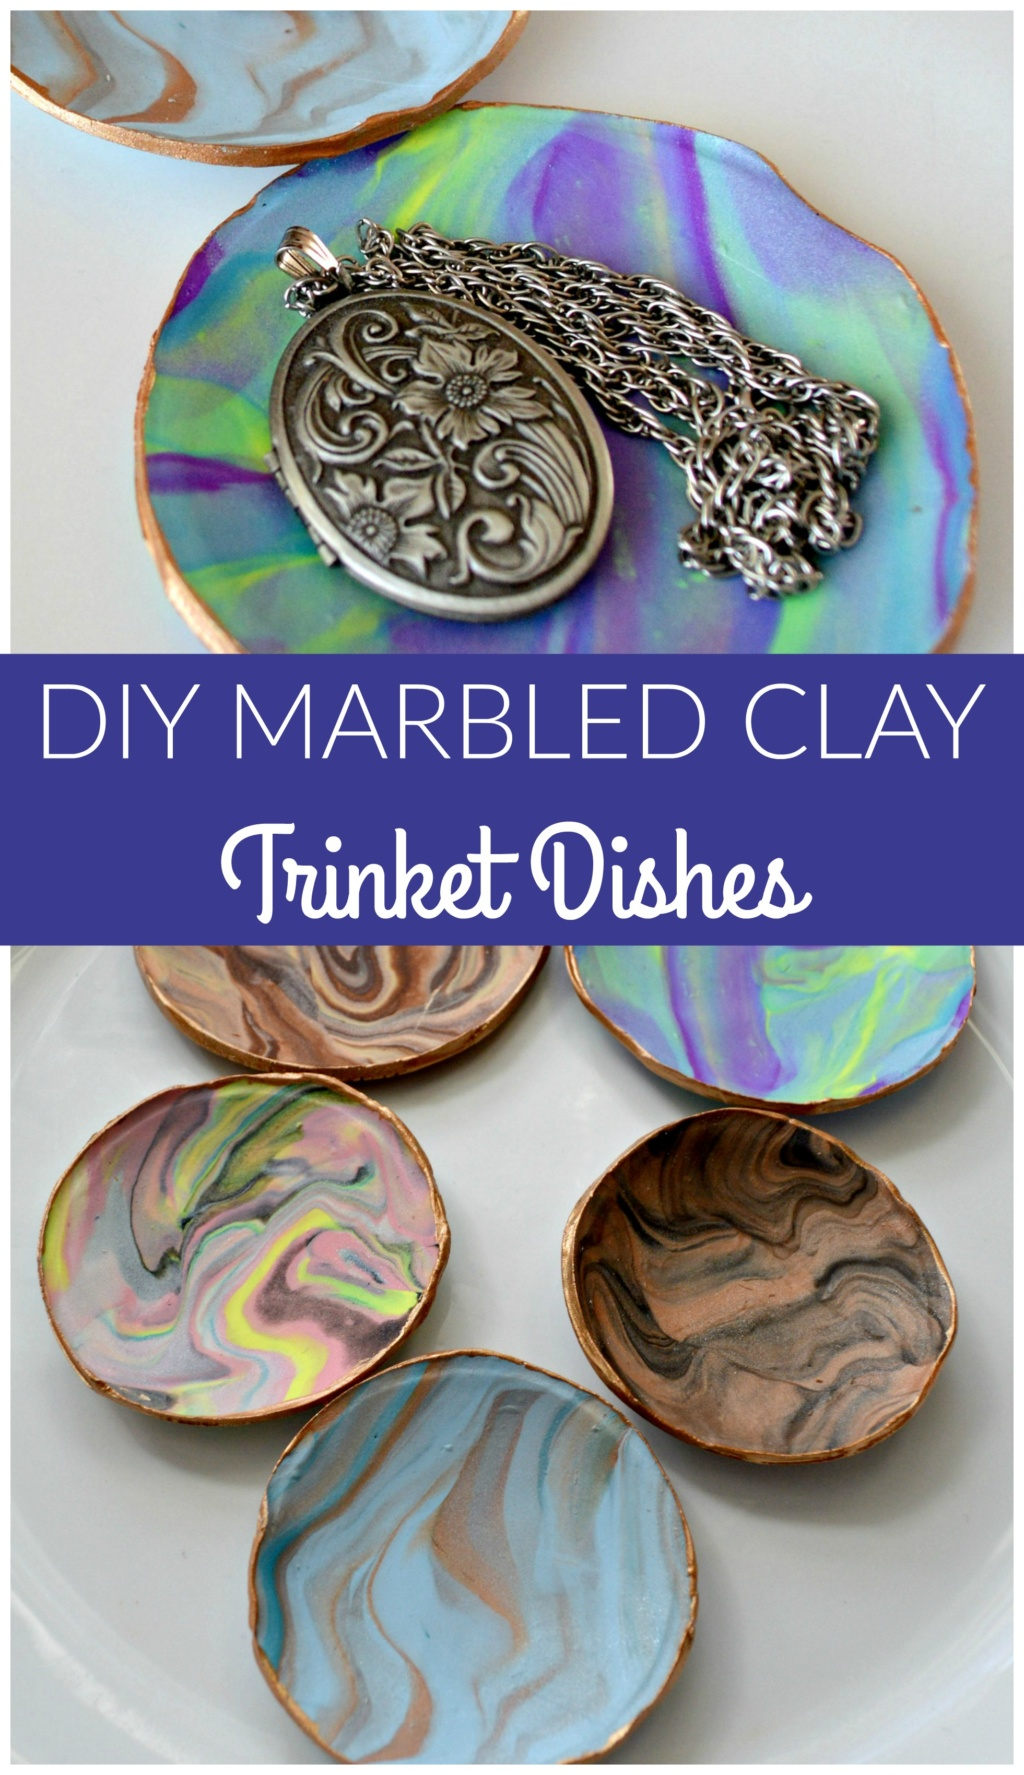 How to Make Marbled Clay Trinket Dishes